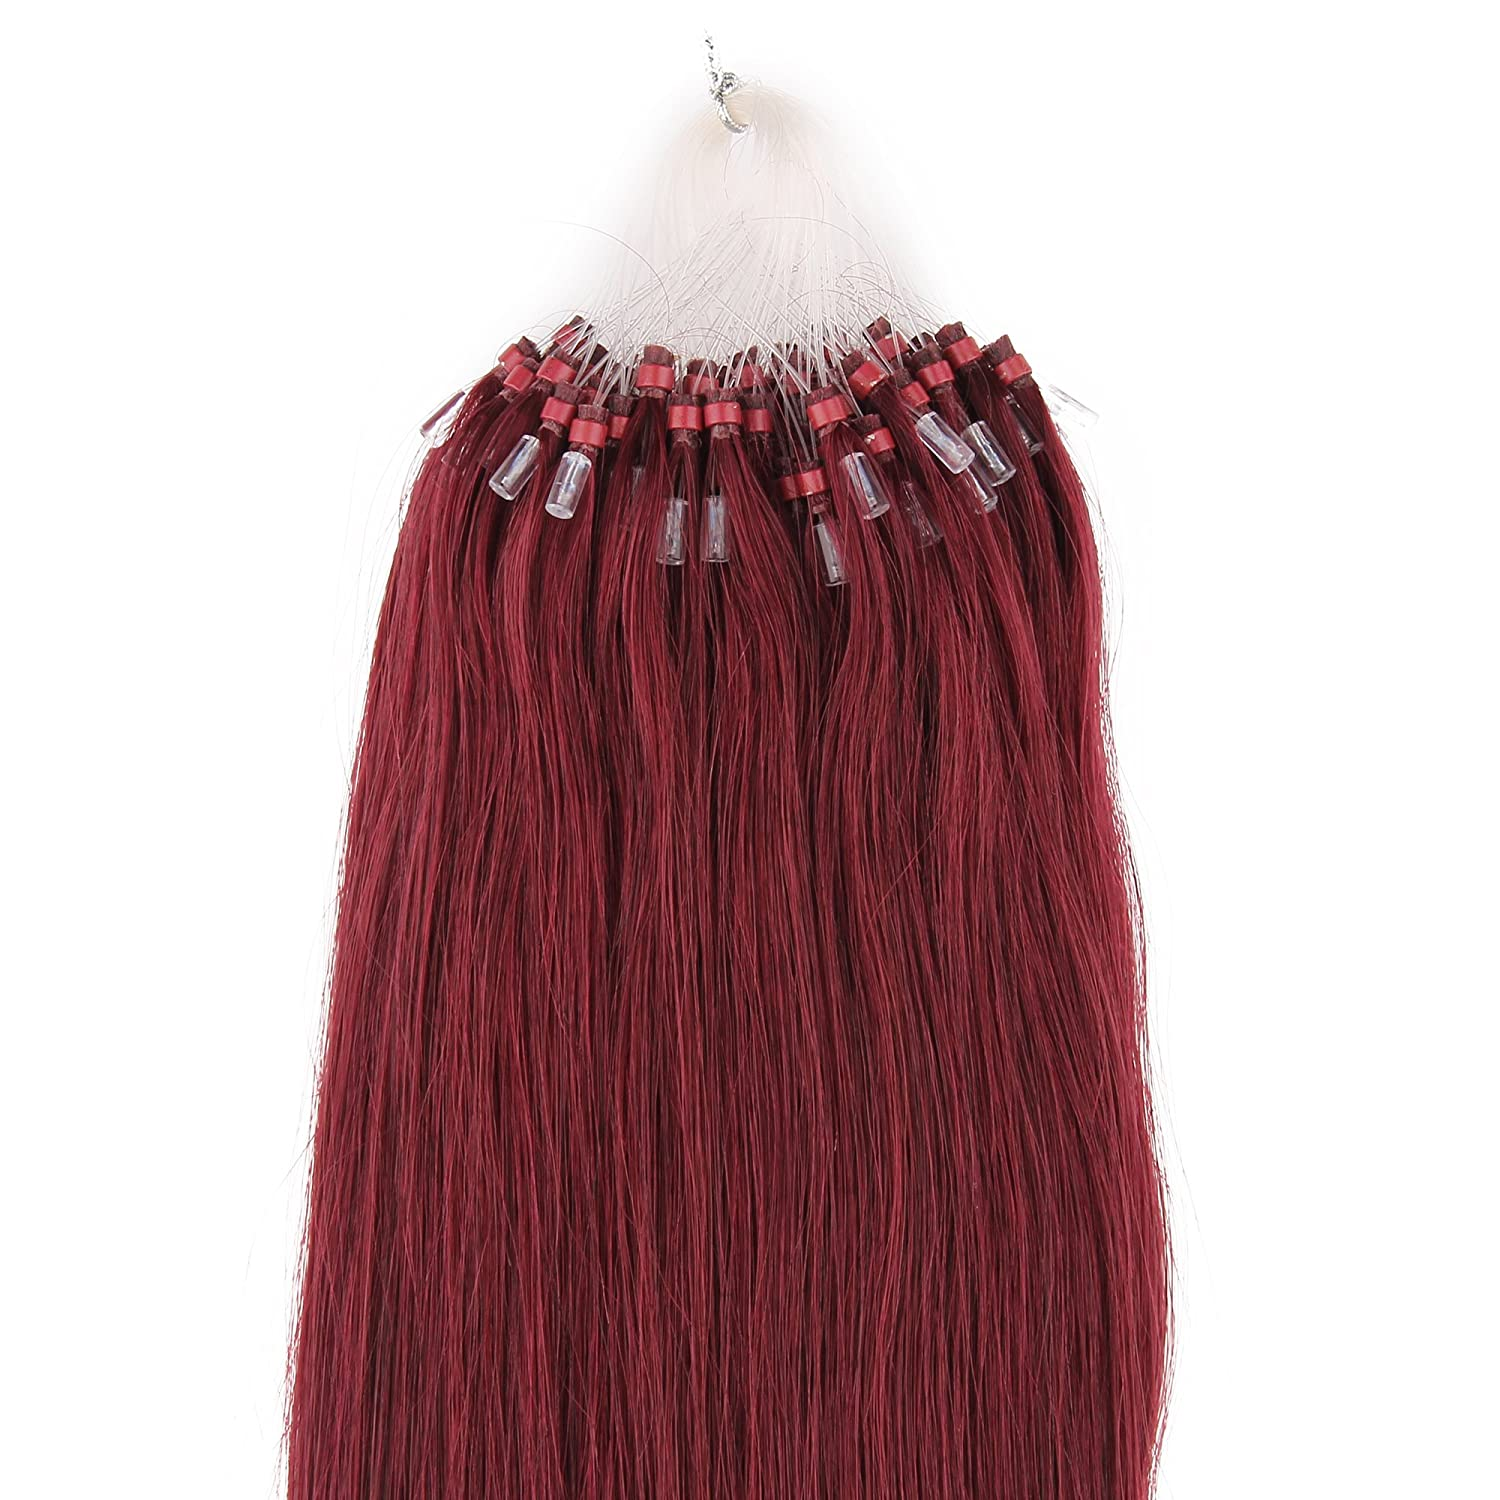 Beauty7 Wine Red Long Straight Microring Hair Extensions Easy Loops